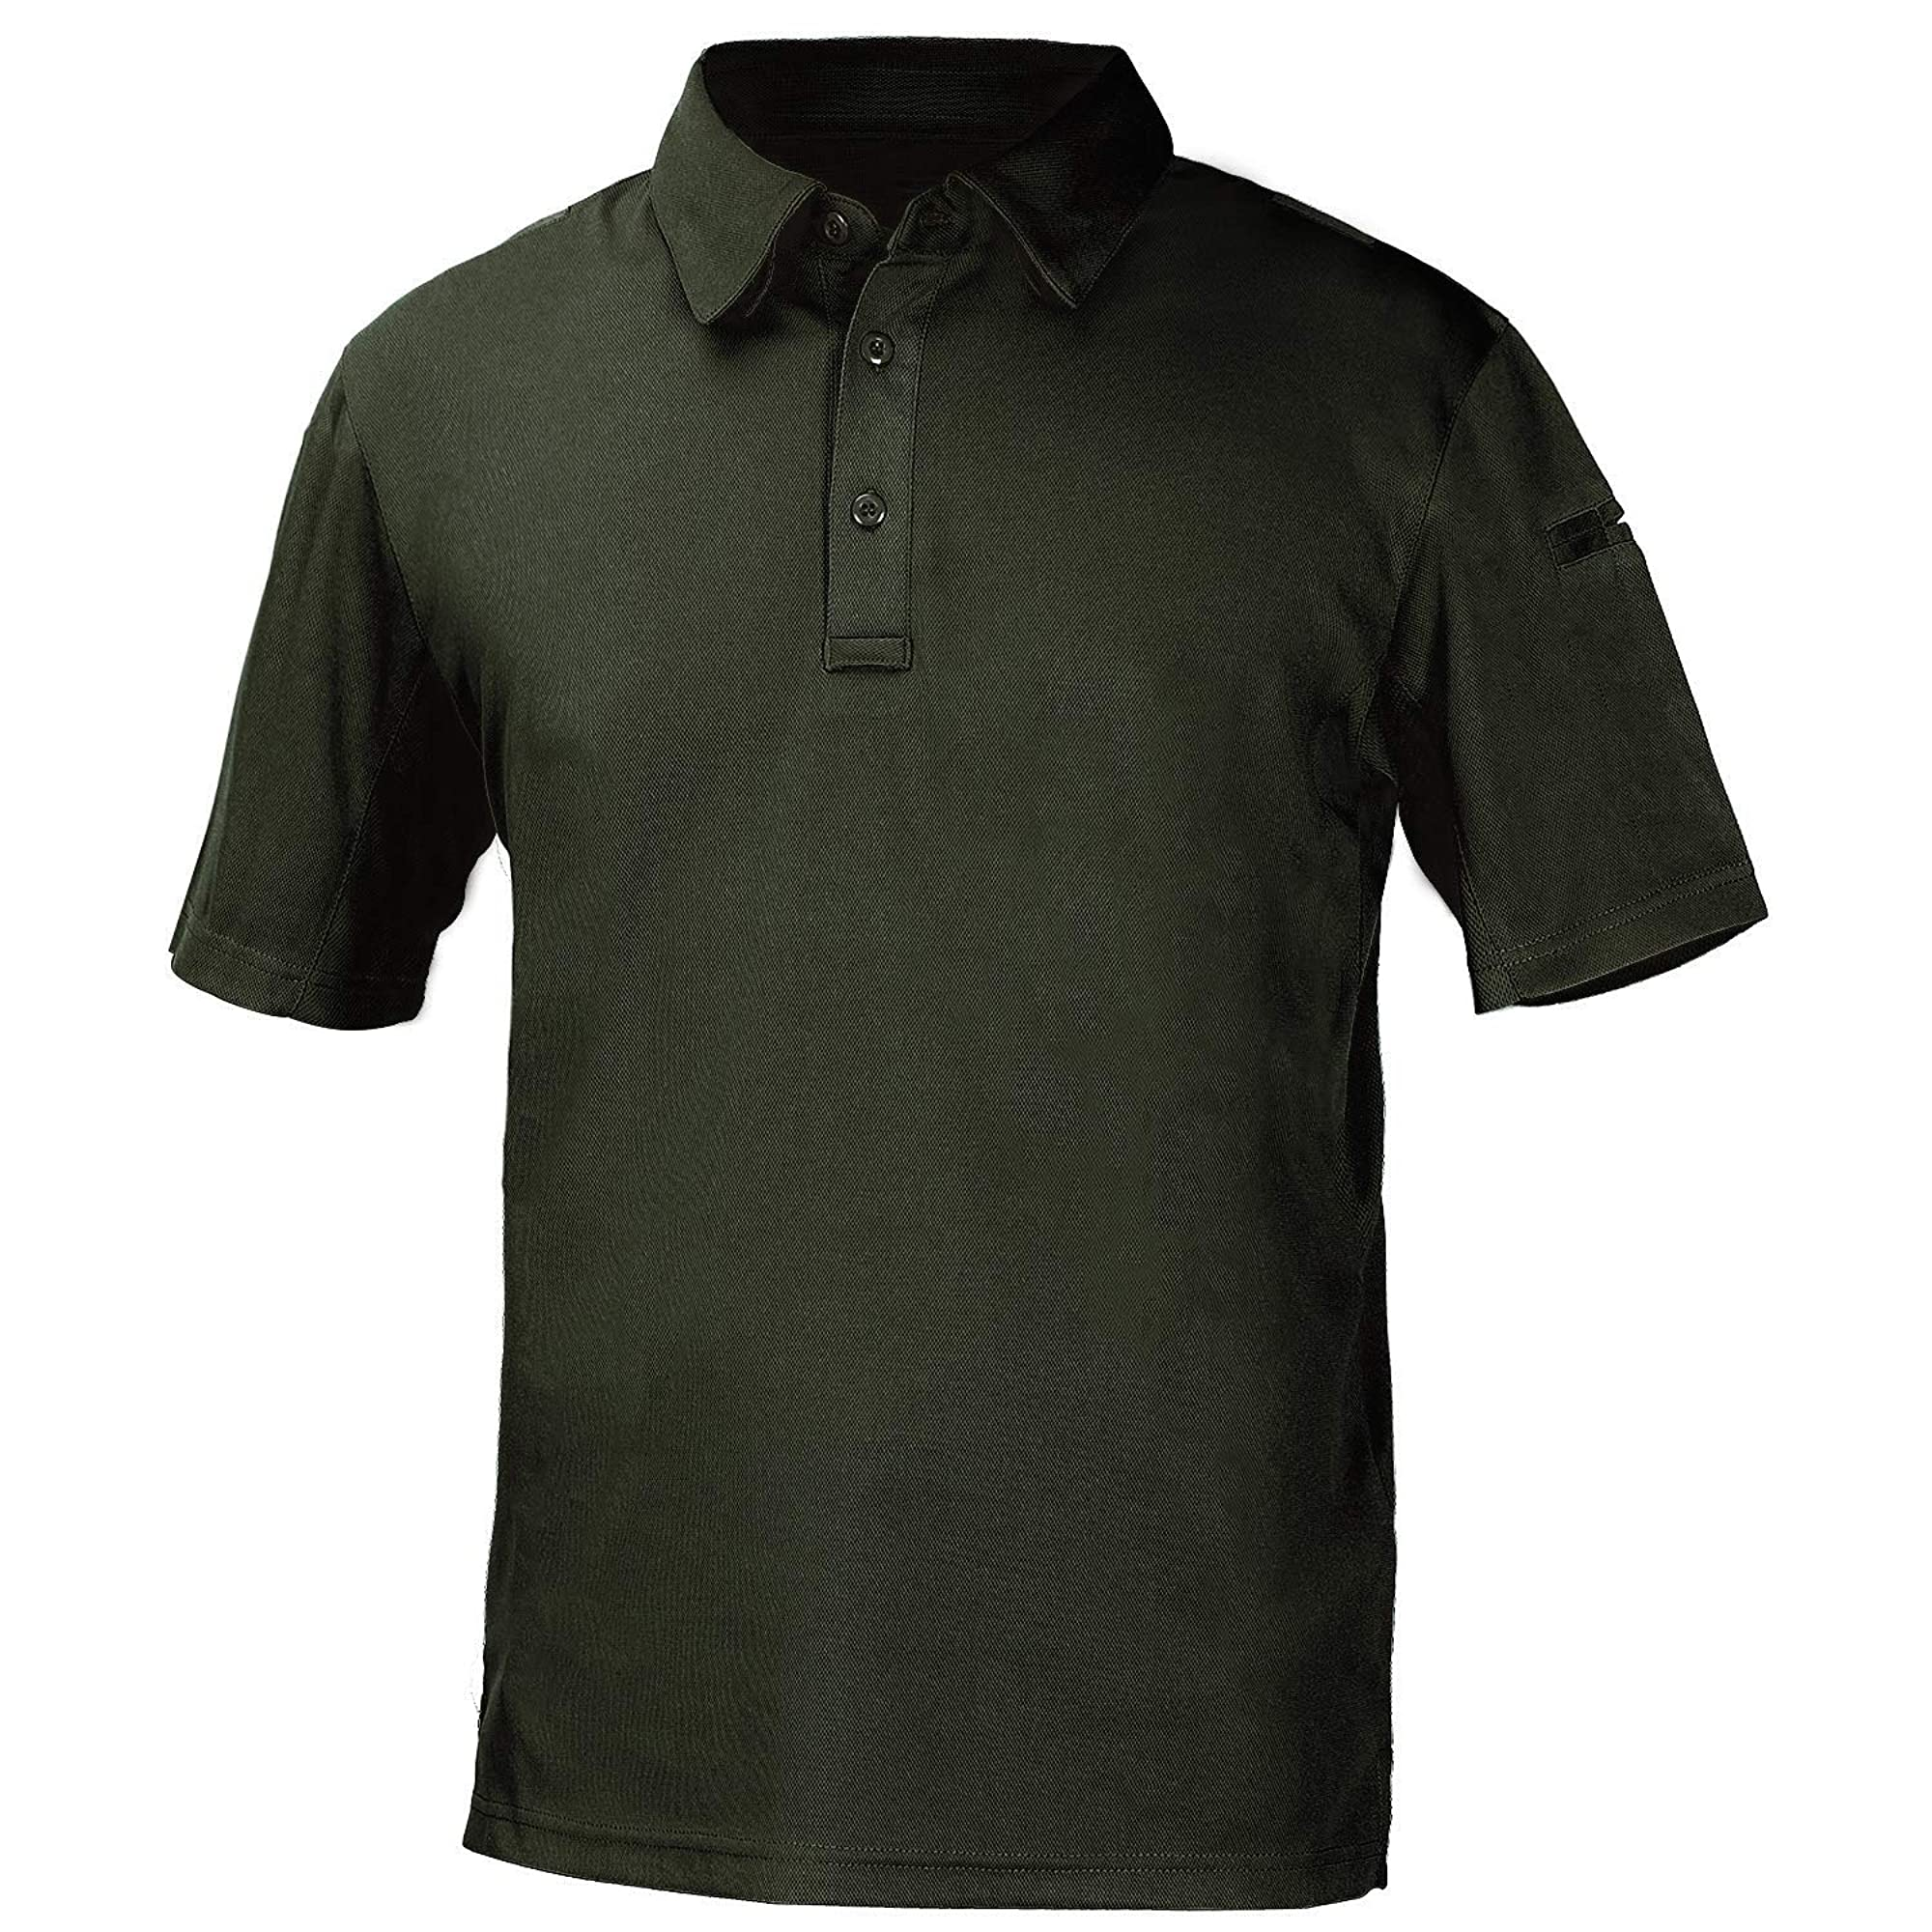 Polo T-Shirts For Men With Long And Short Sleeves